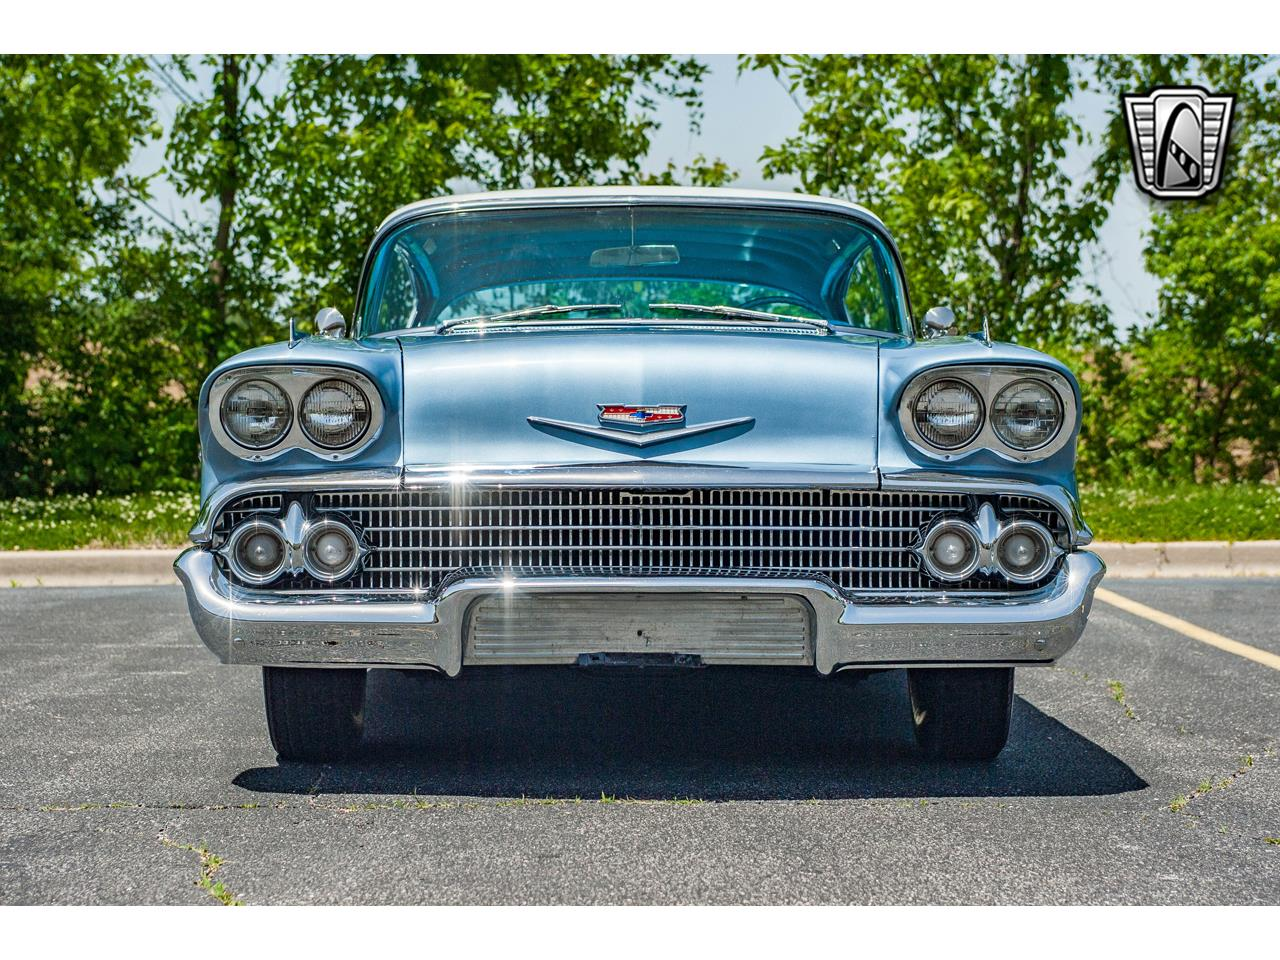 Large Picture of Classic 1958 Impala - $62,000.00 Offered by Gateway Classic Cars - St. Louis - QB9Q